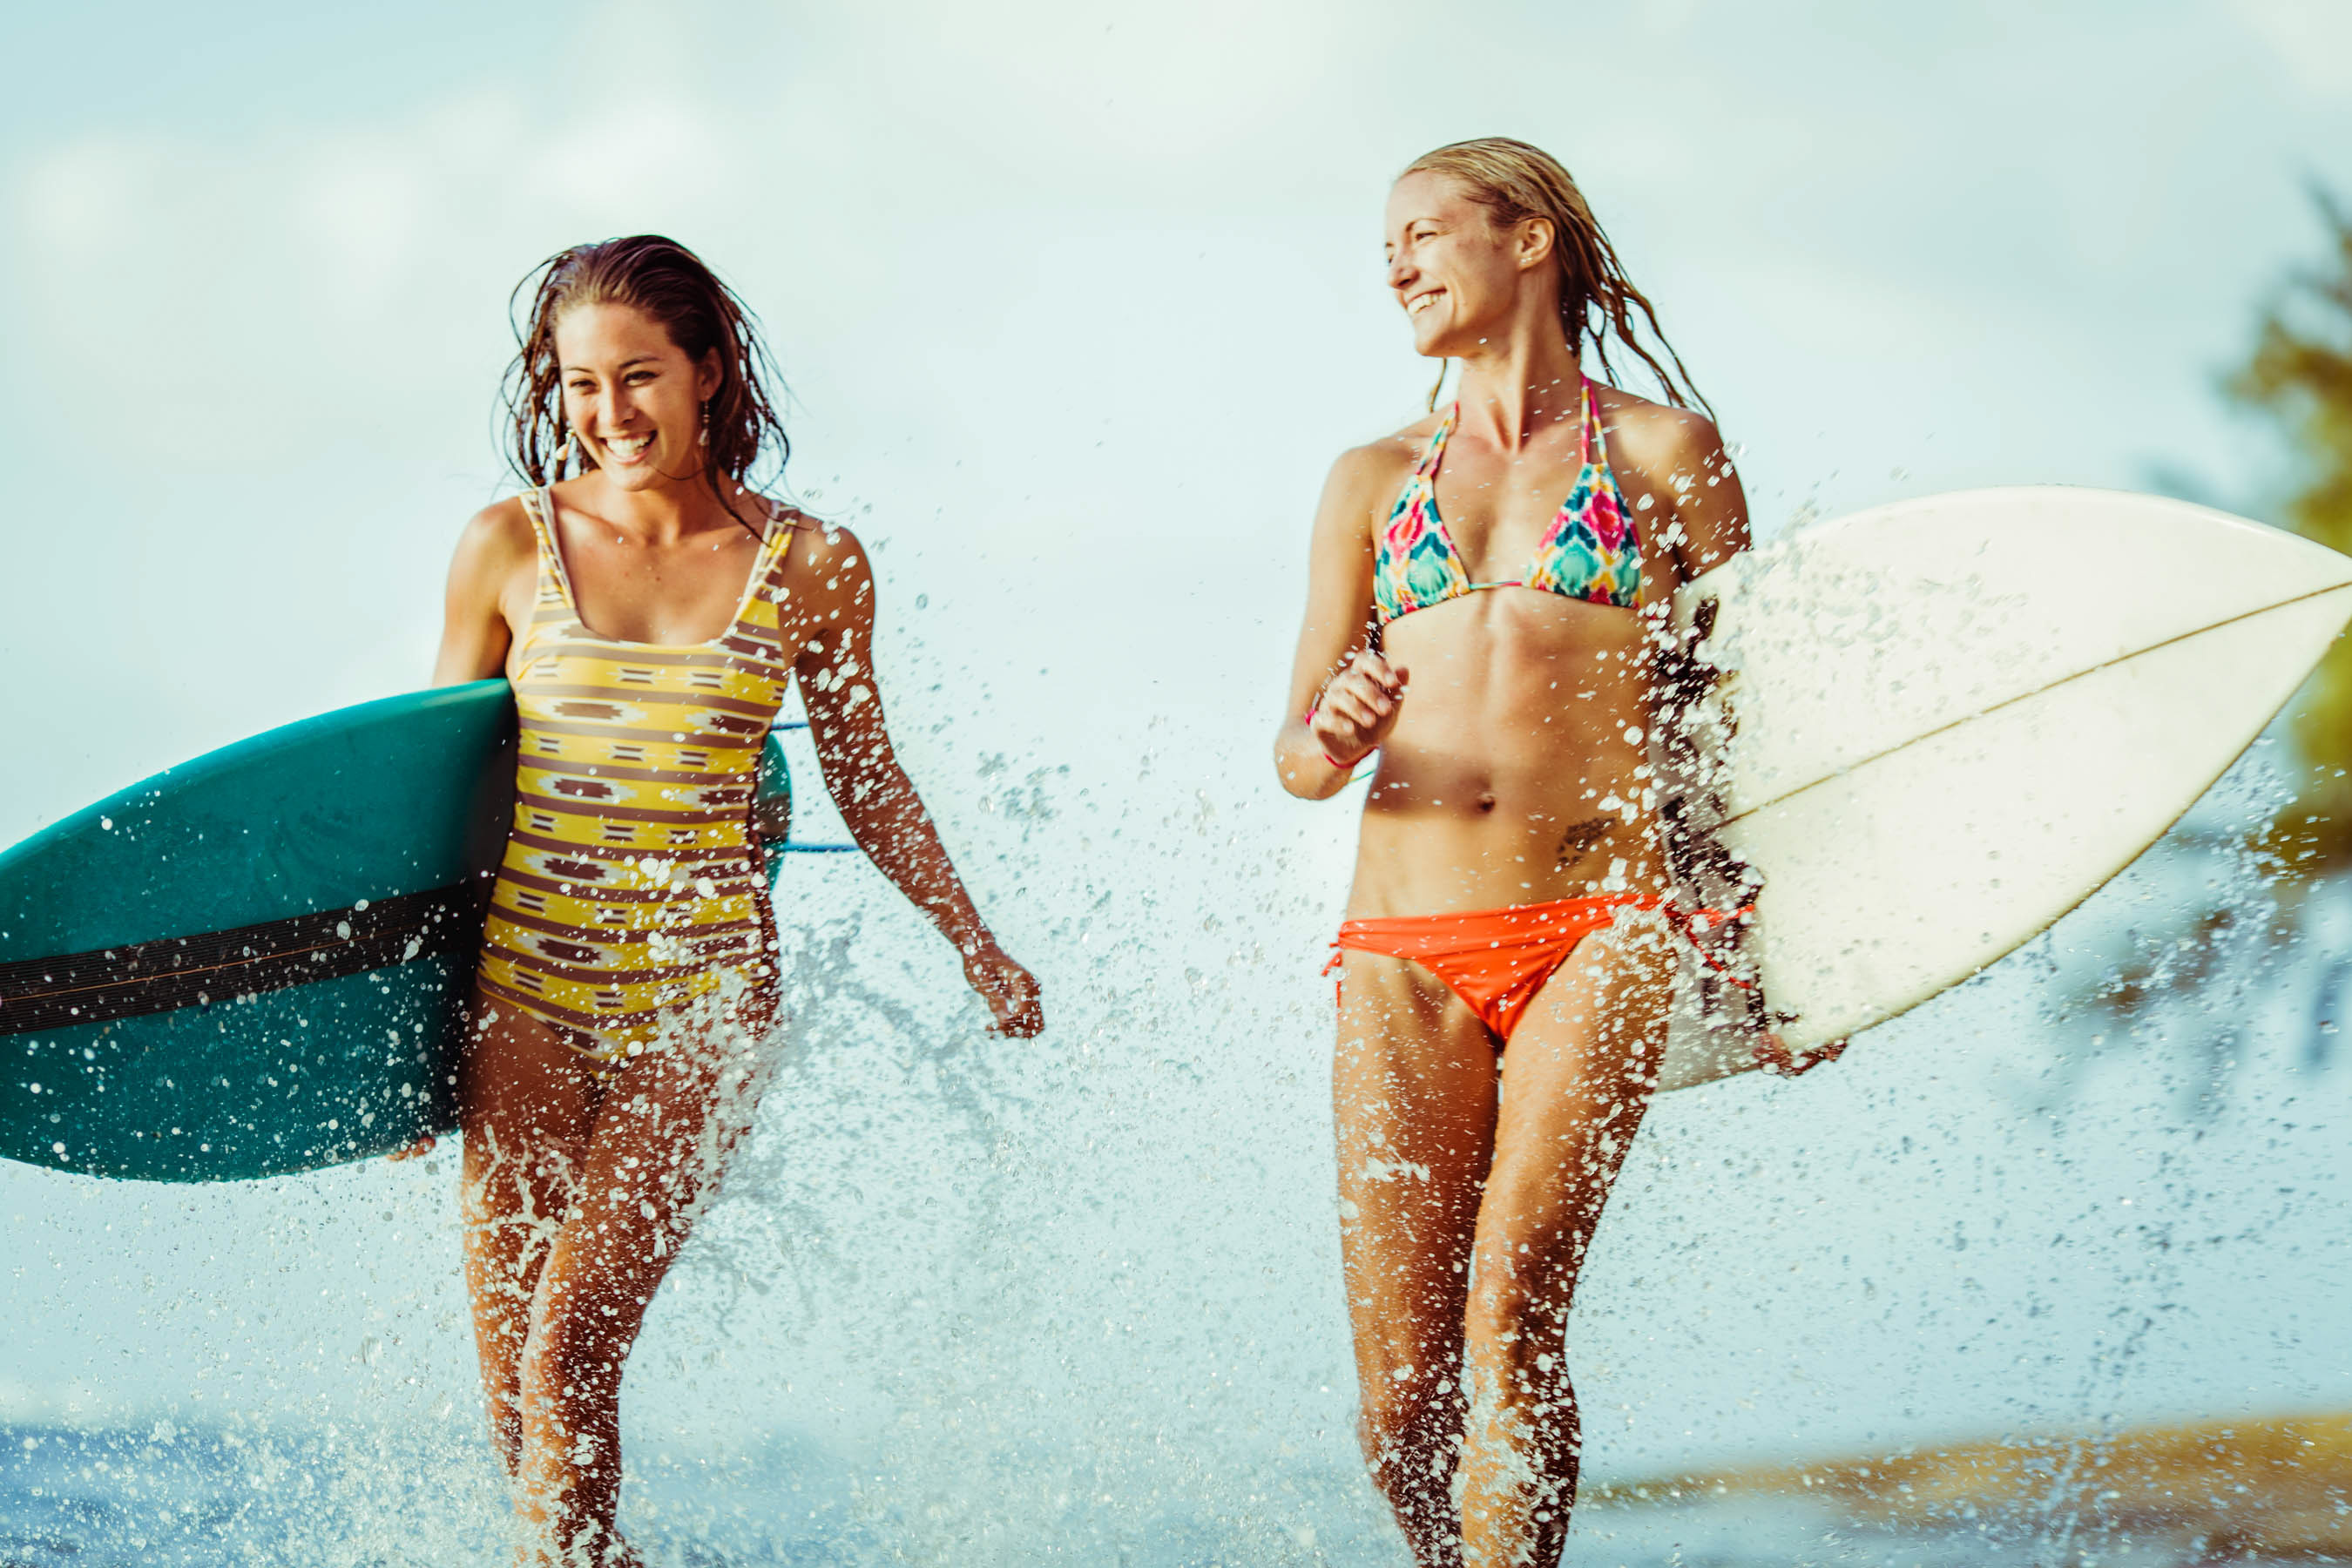 0636_27_HAWAII_08_SURFING_1324copy_